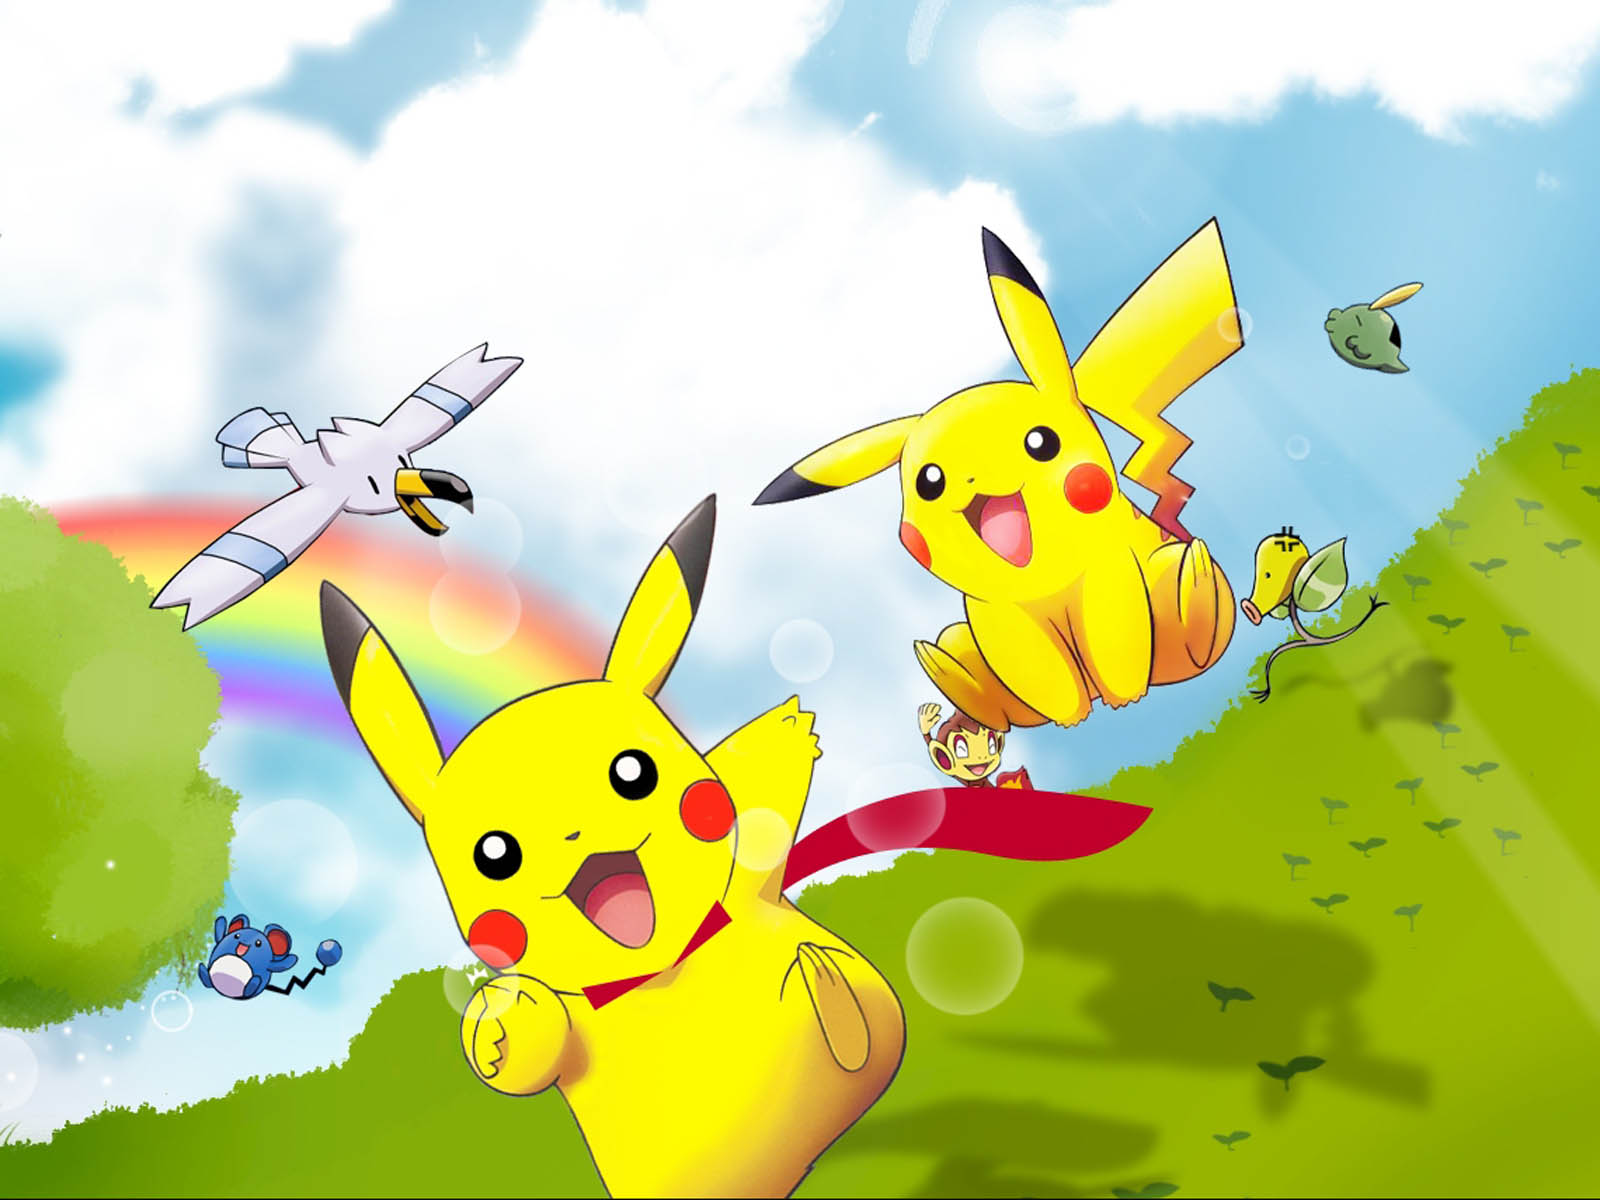 Cute Anime Girl Wallpaper Hd For Android Pikachu Wallpapers High Quality Download Free